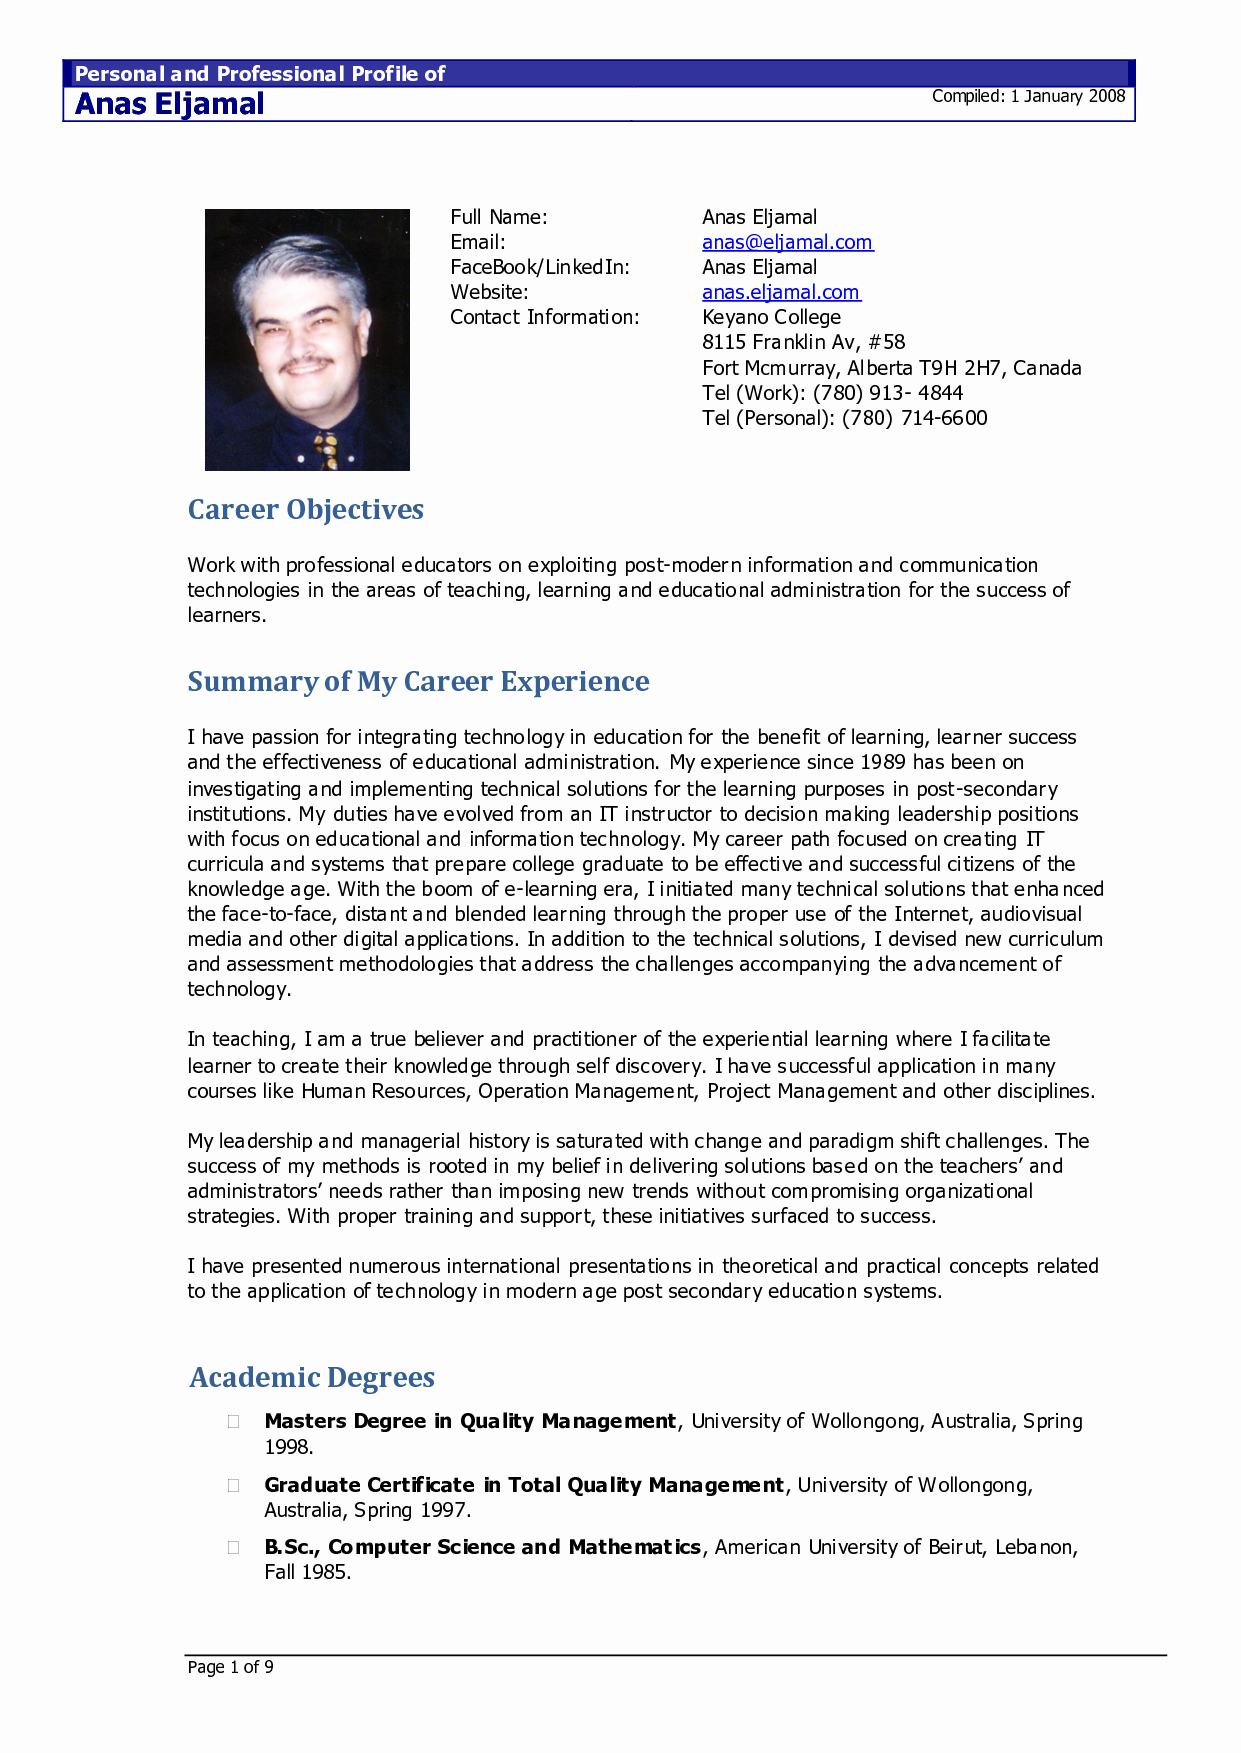 Resume format 2015 Free Download Awesome Template Design Part 2